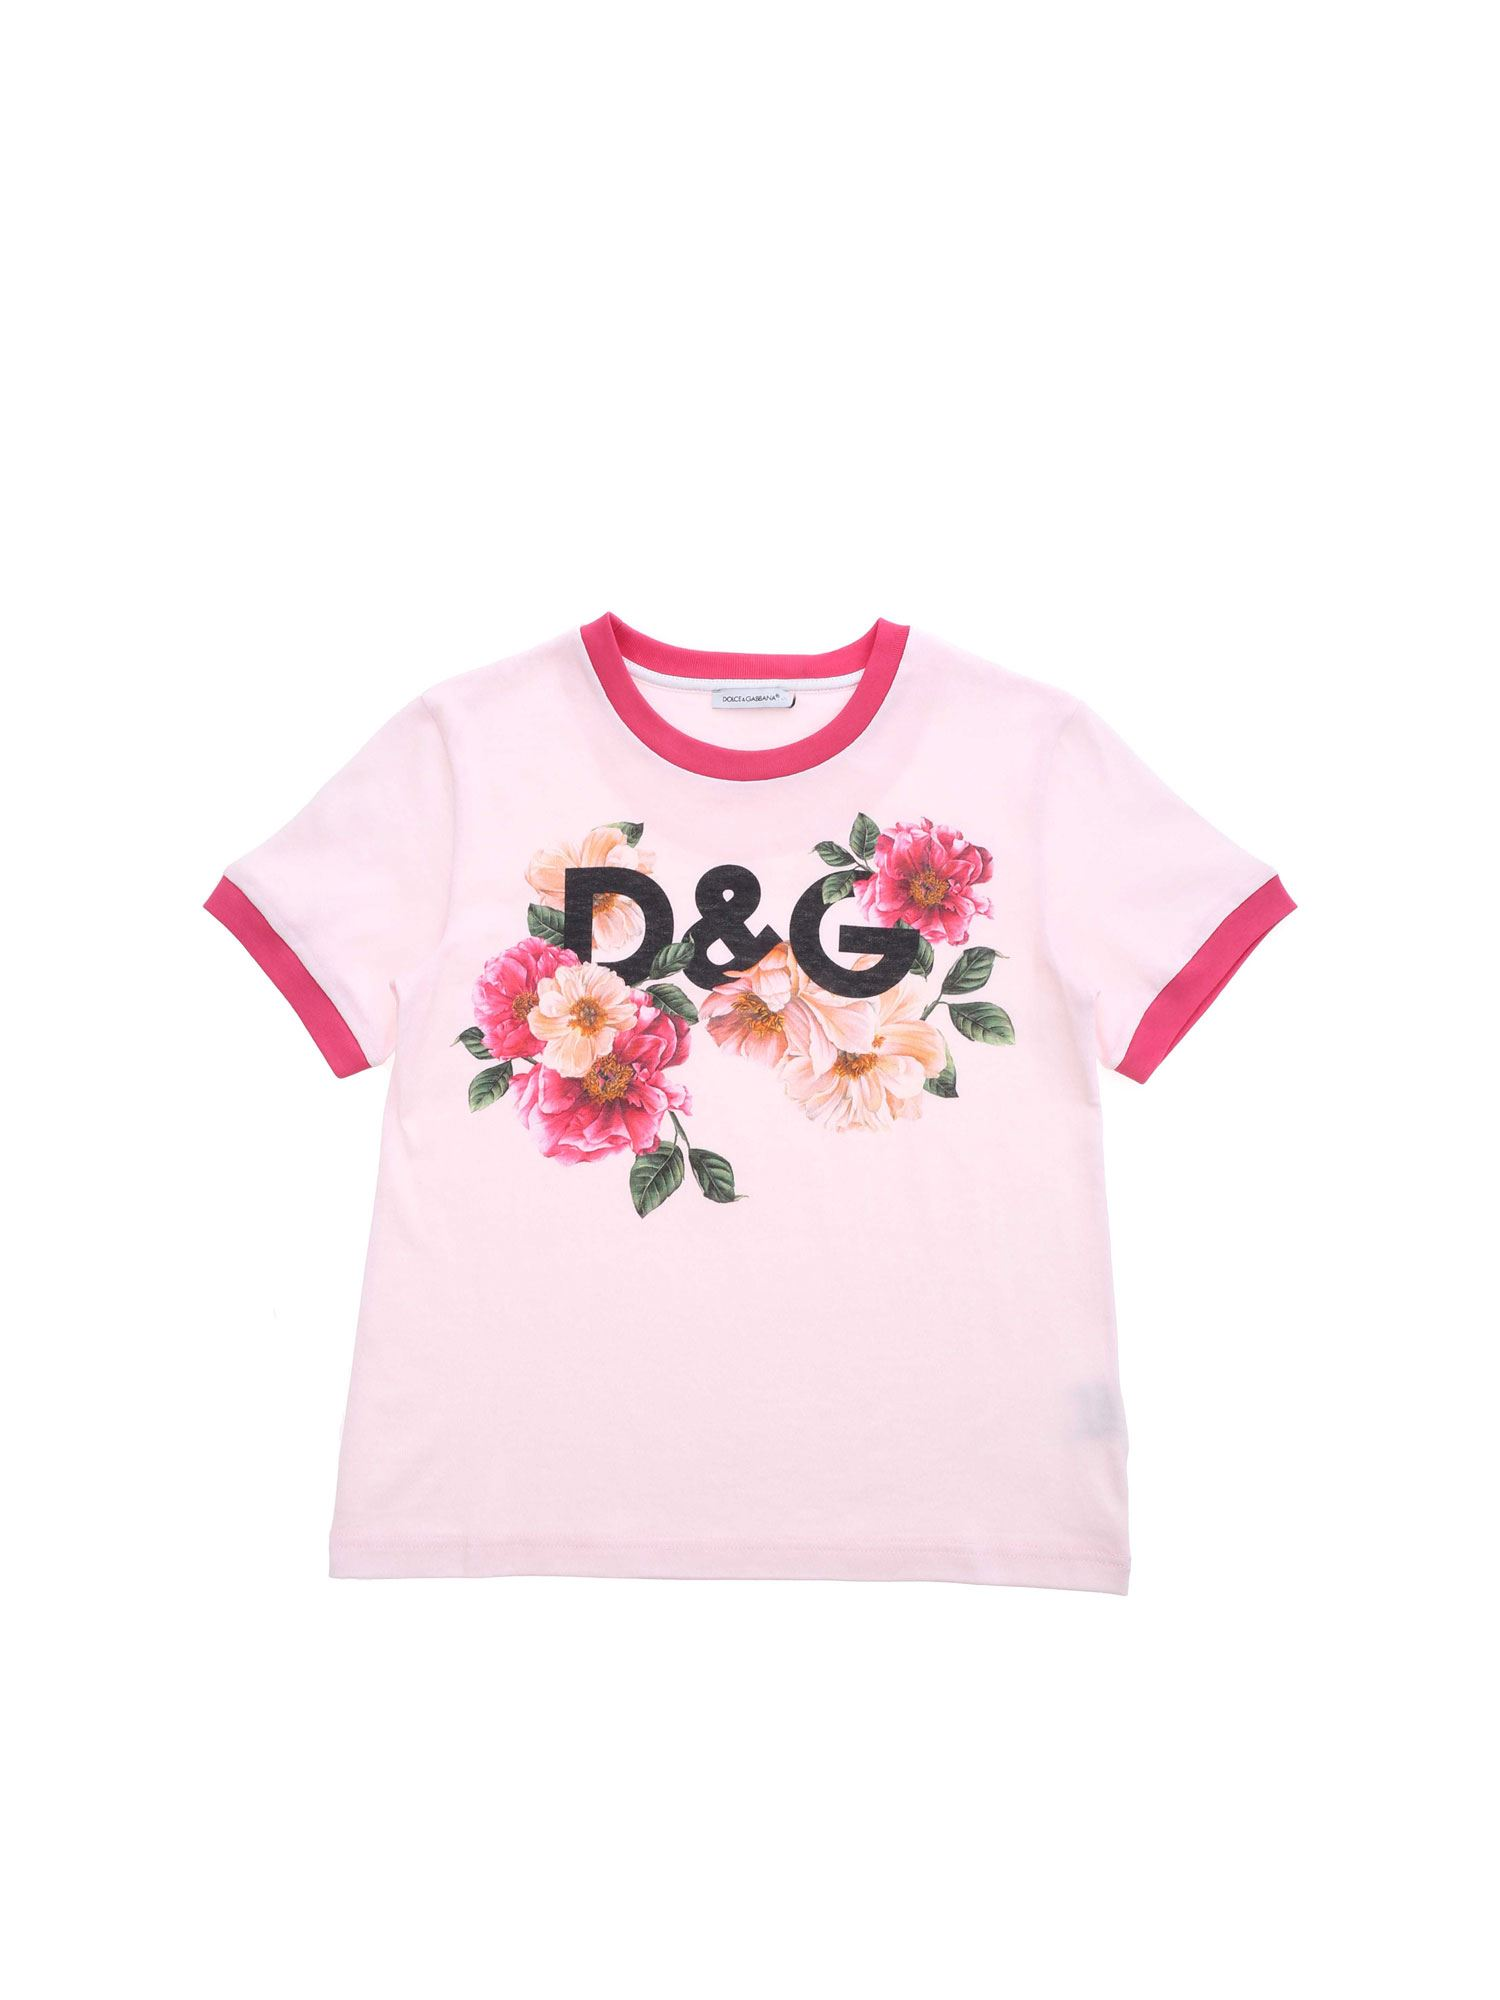 Dolce & Gabbana Jr Cottons FLORAL PRINT T-SHIRT IN PINK